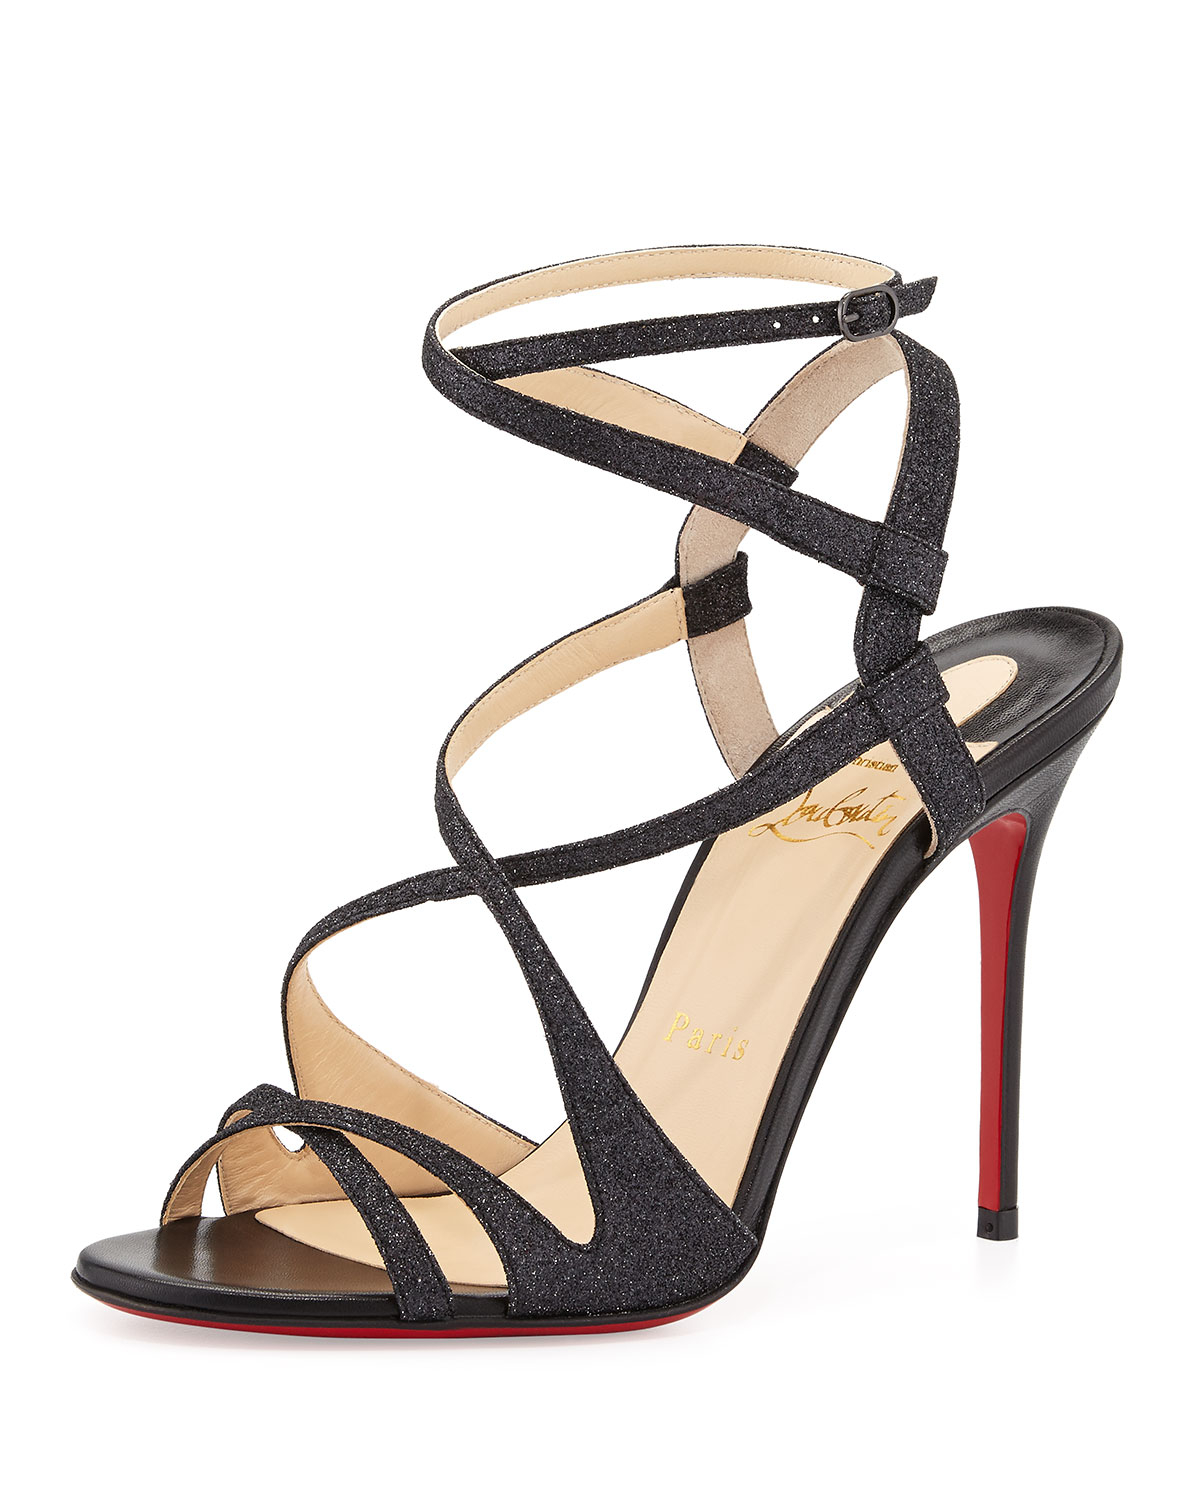 christian louis vuitton men shoes - christian louboutin sandals Black patent leather glitter covered ...